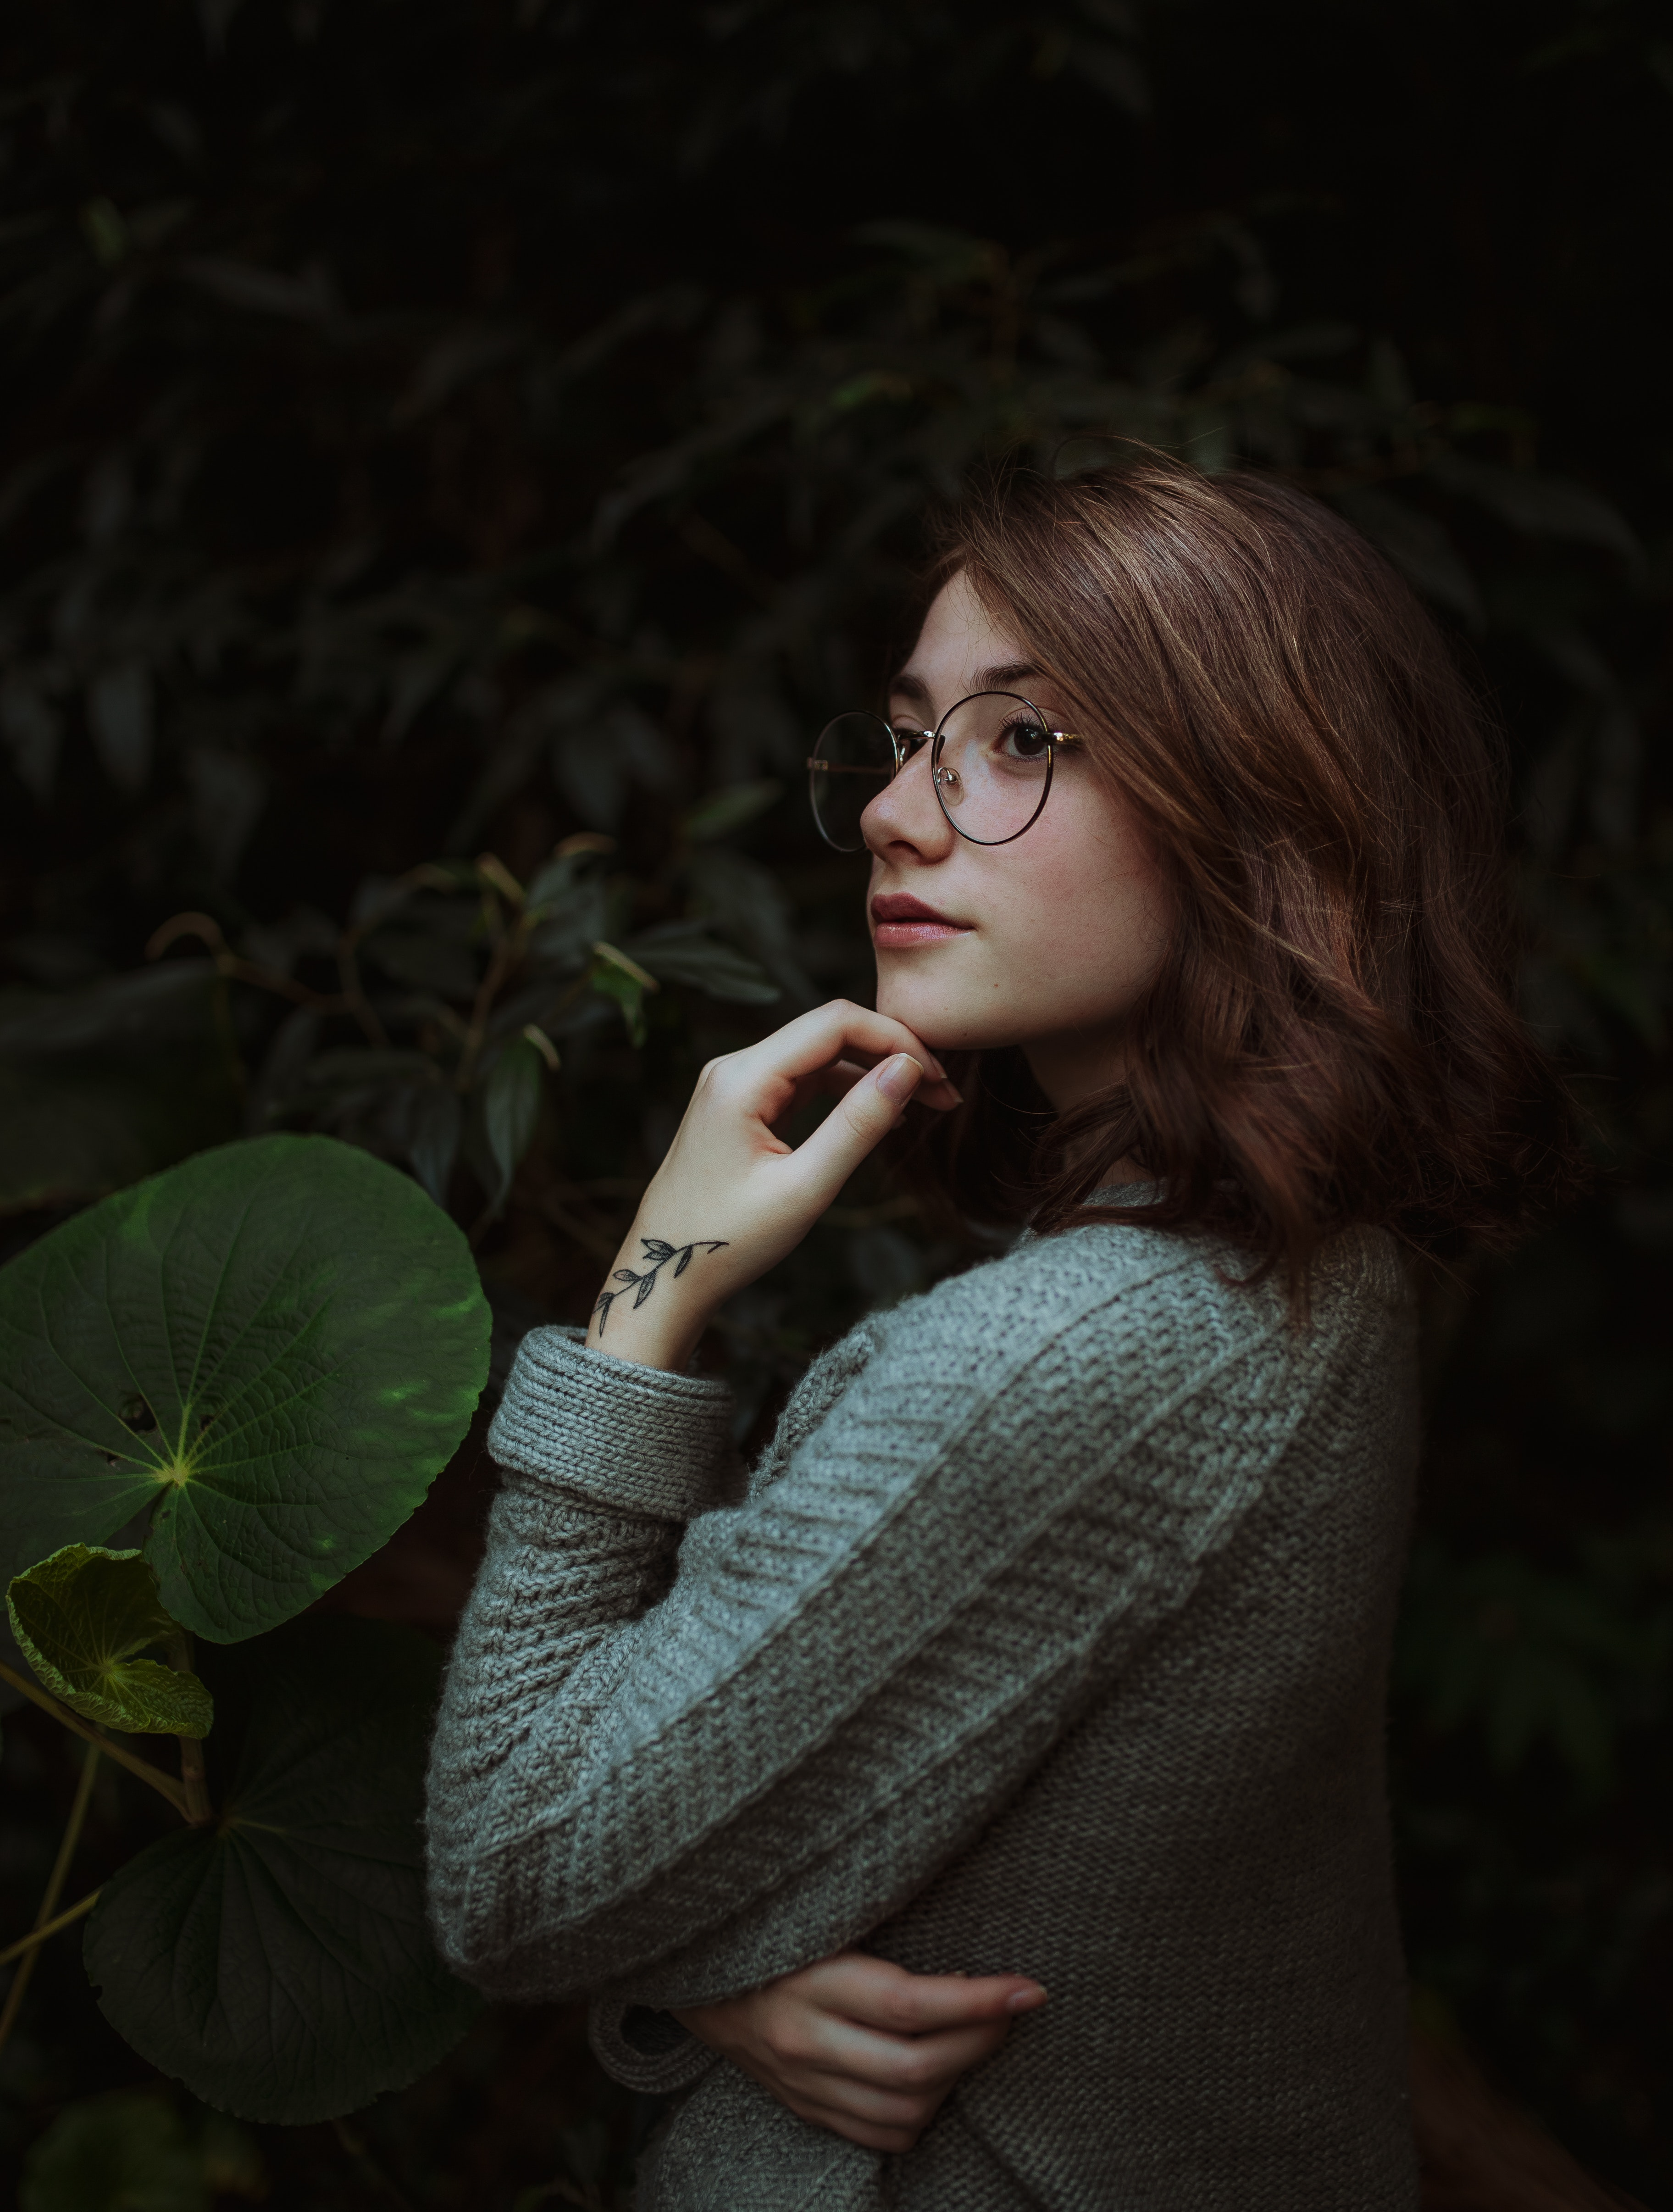 A woman wearing a black framed eyeglasses posing beside green plants